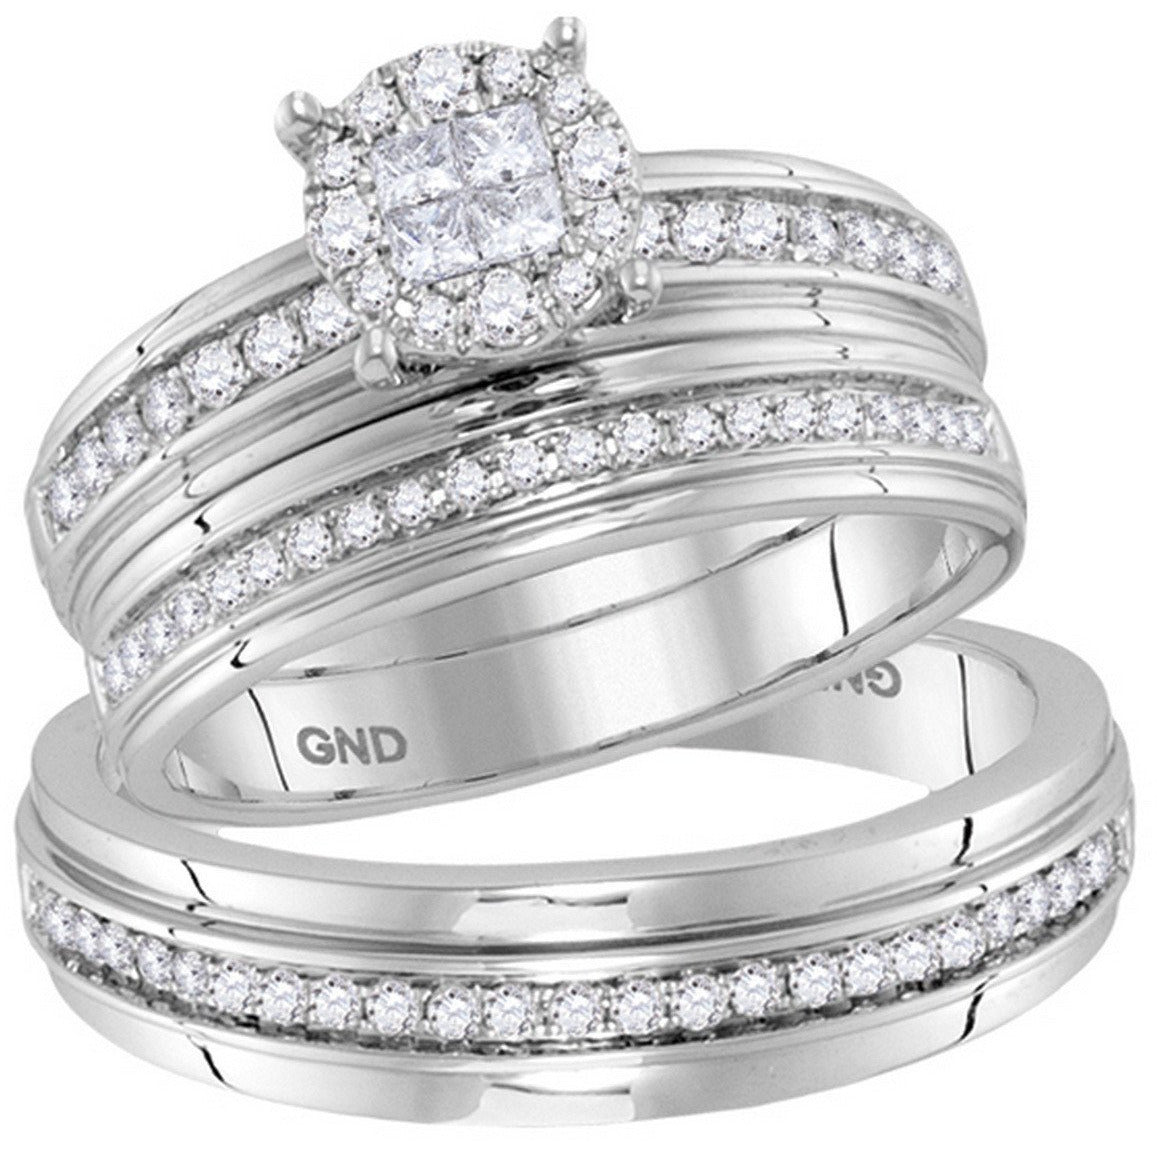 14kt White Gold His & Hers Diamond Soleil Cluster Matching Bridal Wedding Ring Band Set 5/8 Cttw 115481 - shirin-diamonds